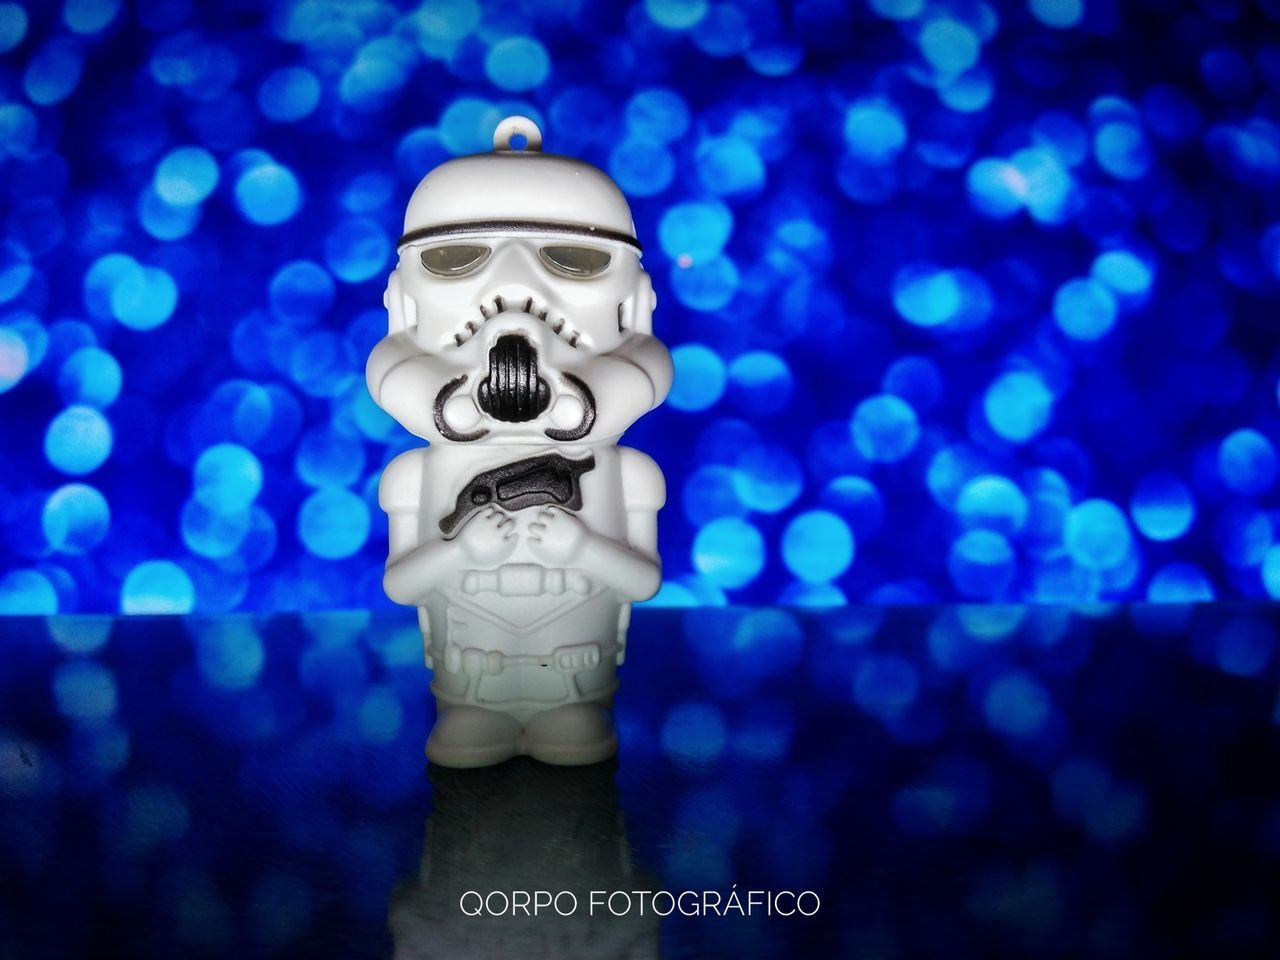 Stormtrooper Star Wars Guerra Nas Estrelas MayThe4thBeWithYou MayTheForceBeWithyou